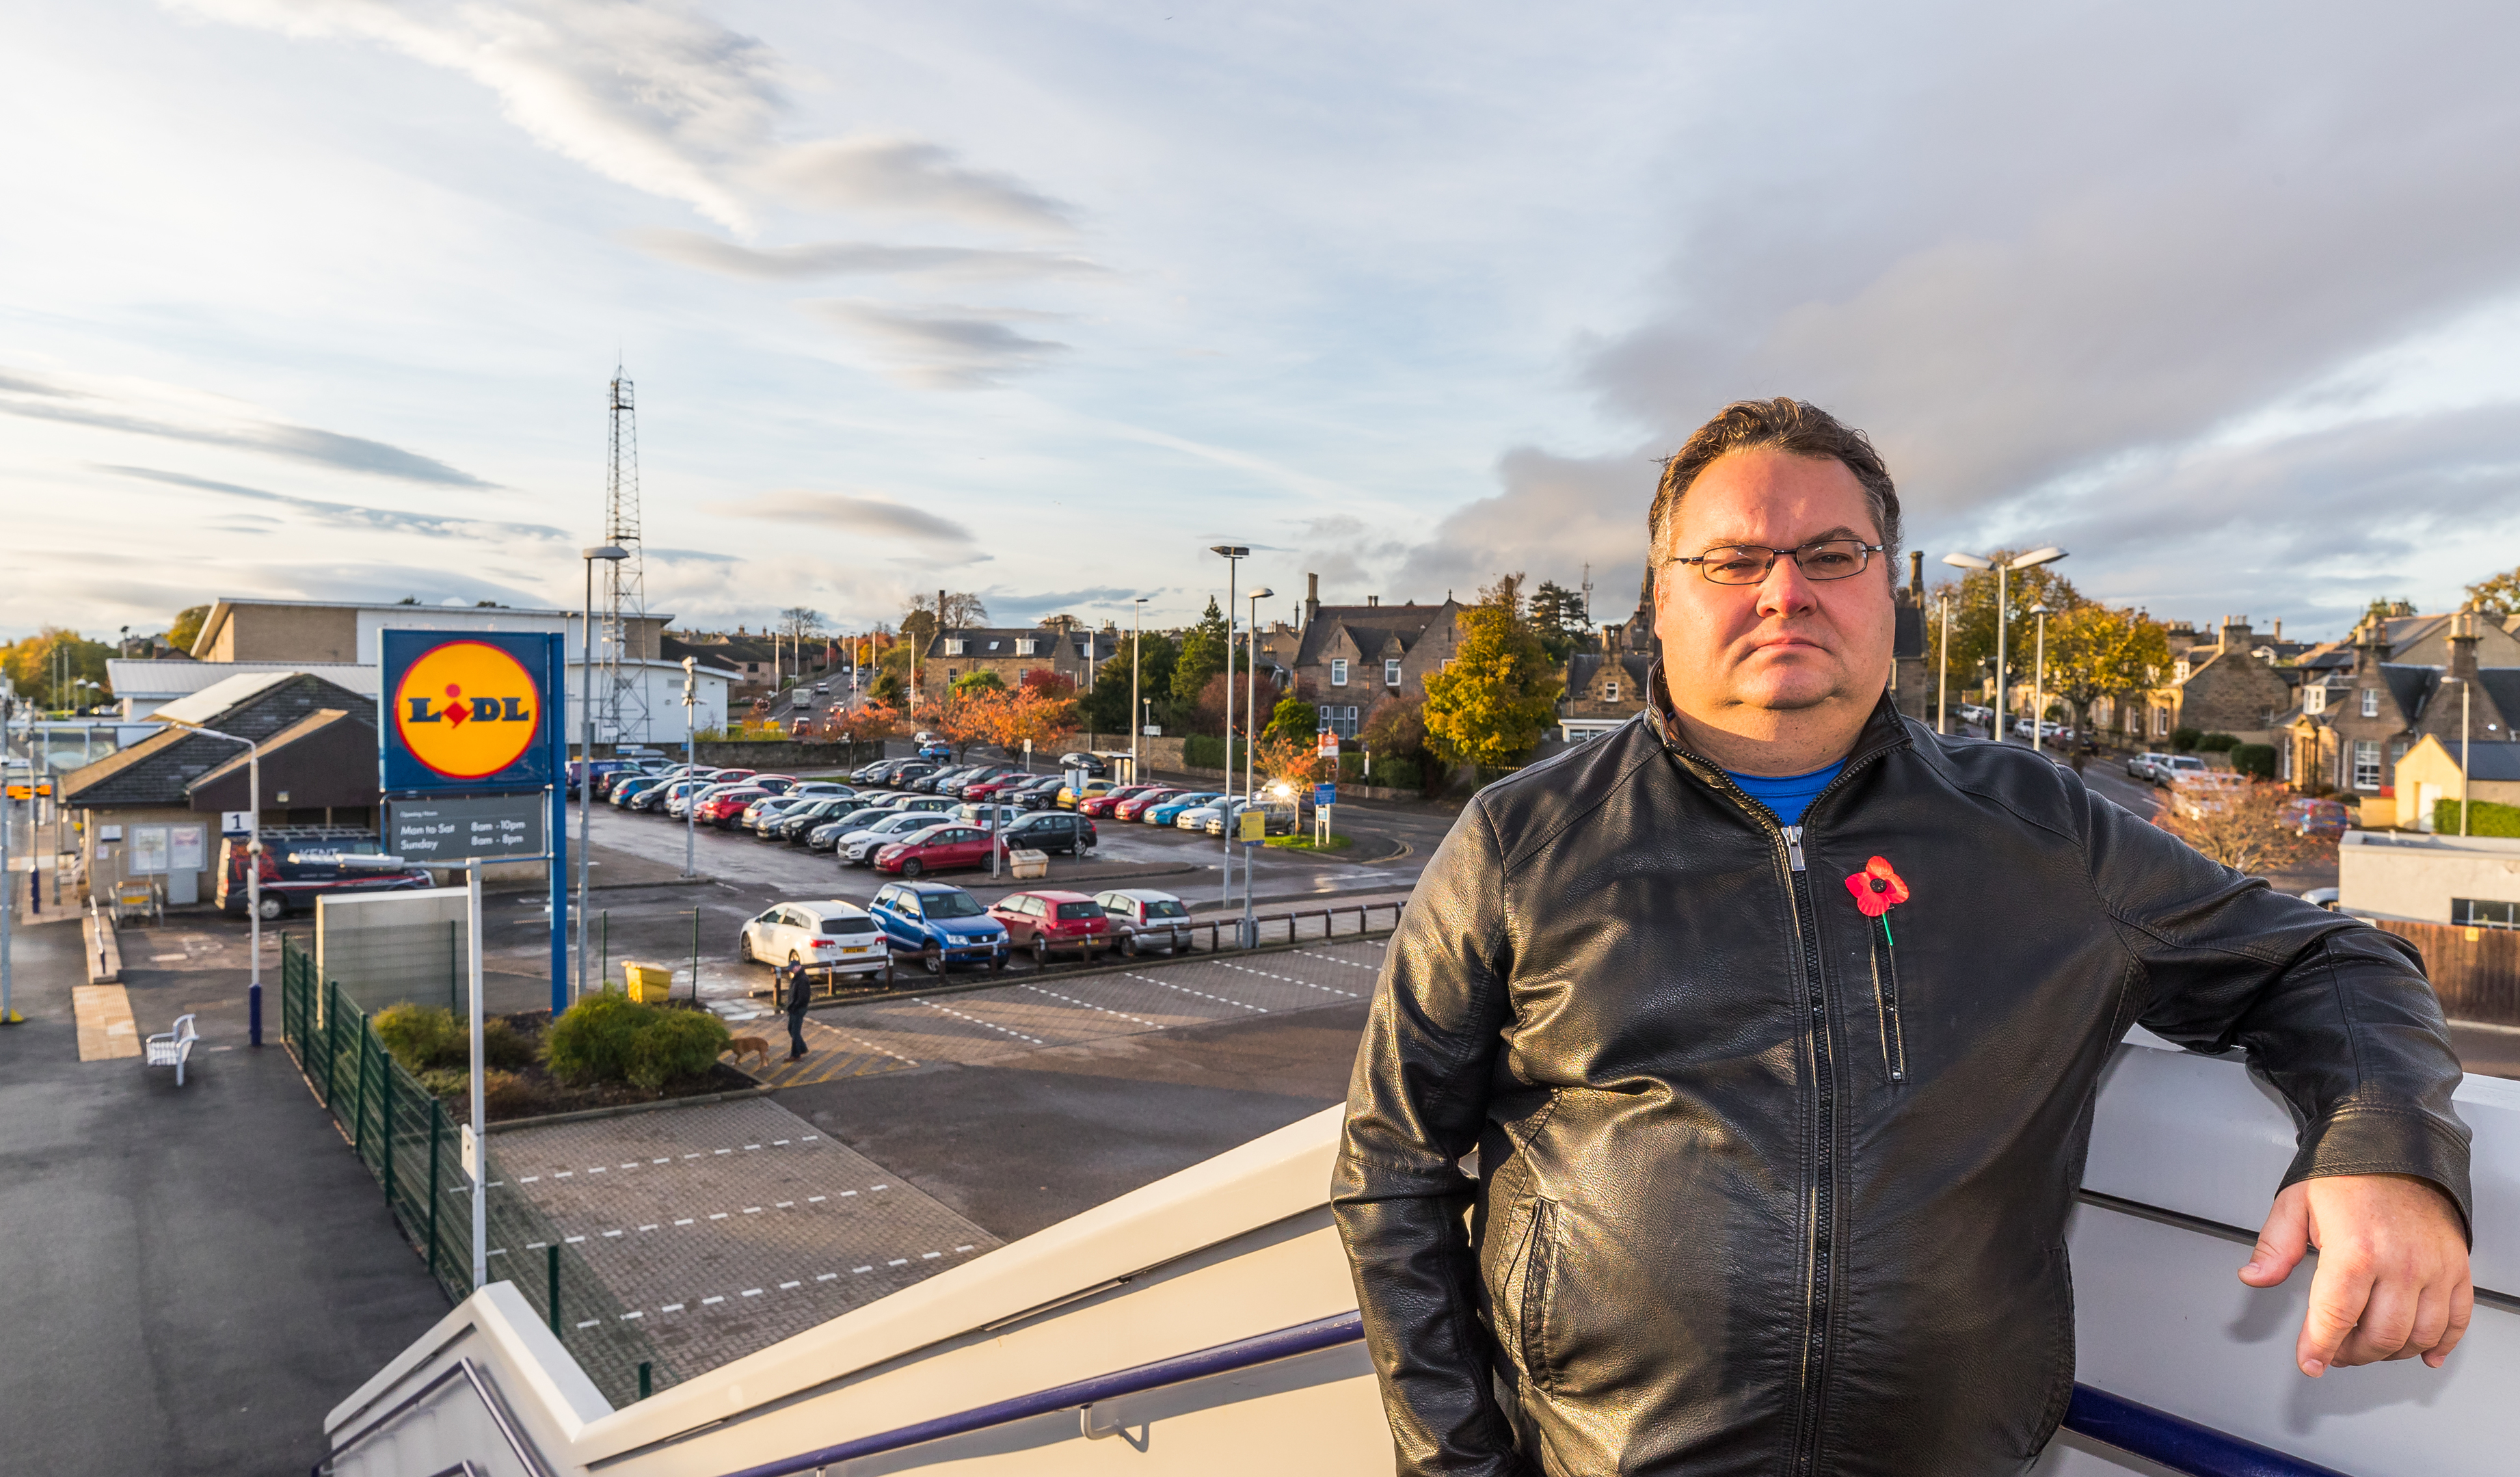 Councillor Graham Leadbitter overlooking the car park at Elgin's railway station